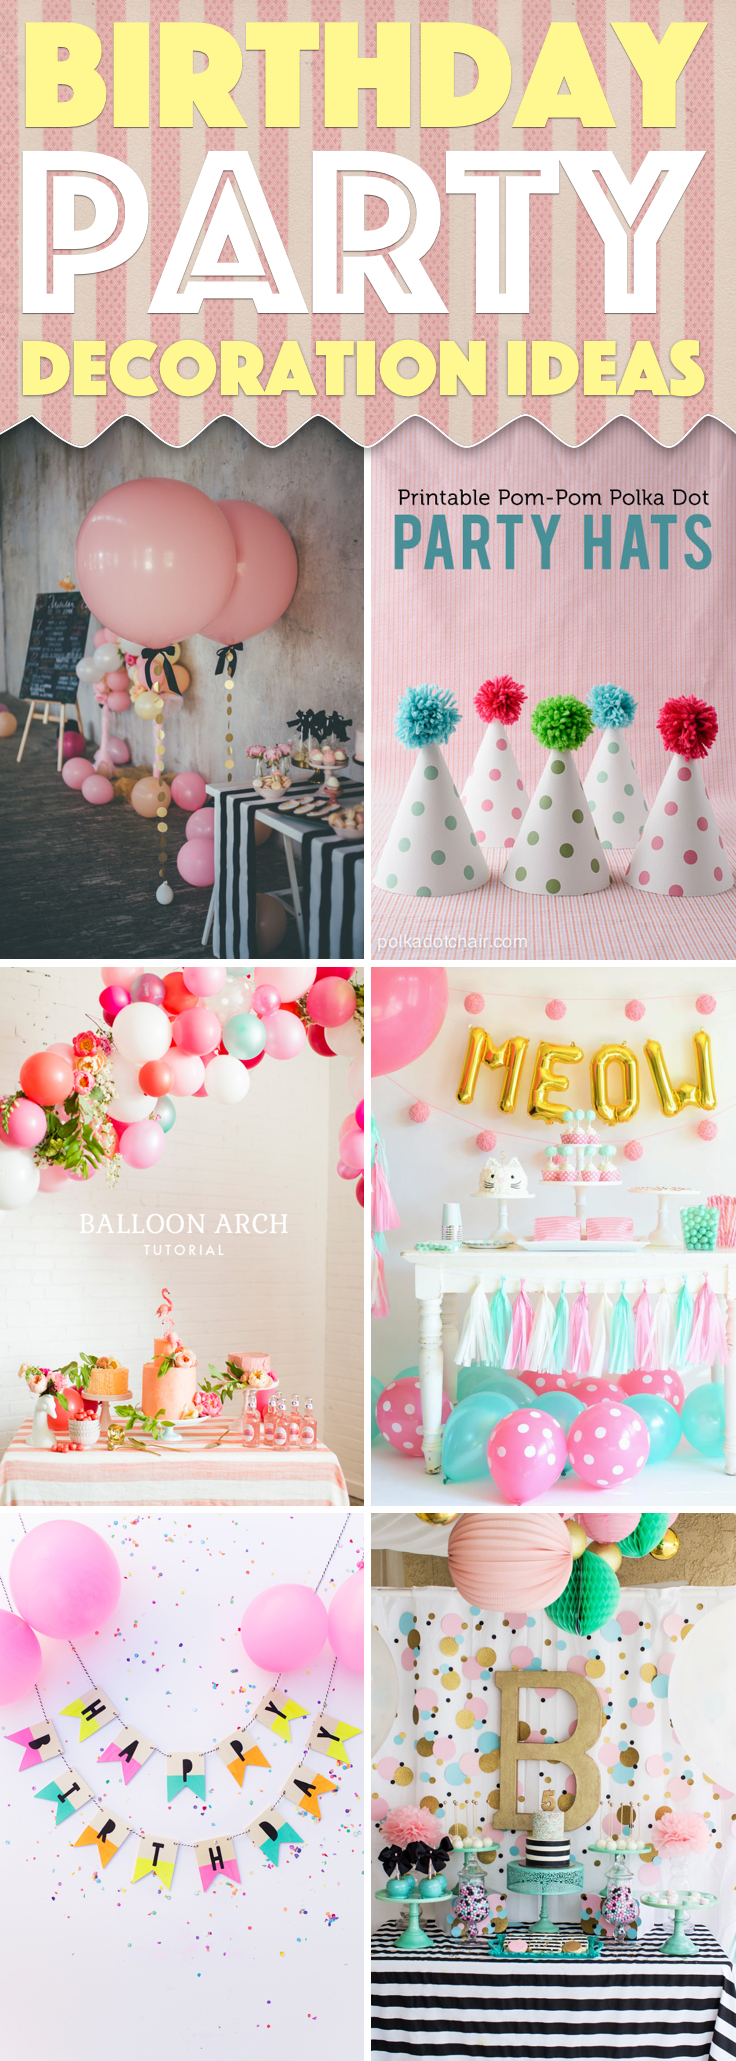 25 Birthday Party Decoration Ideas